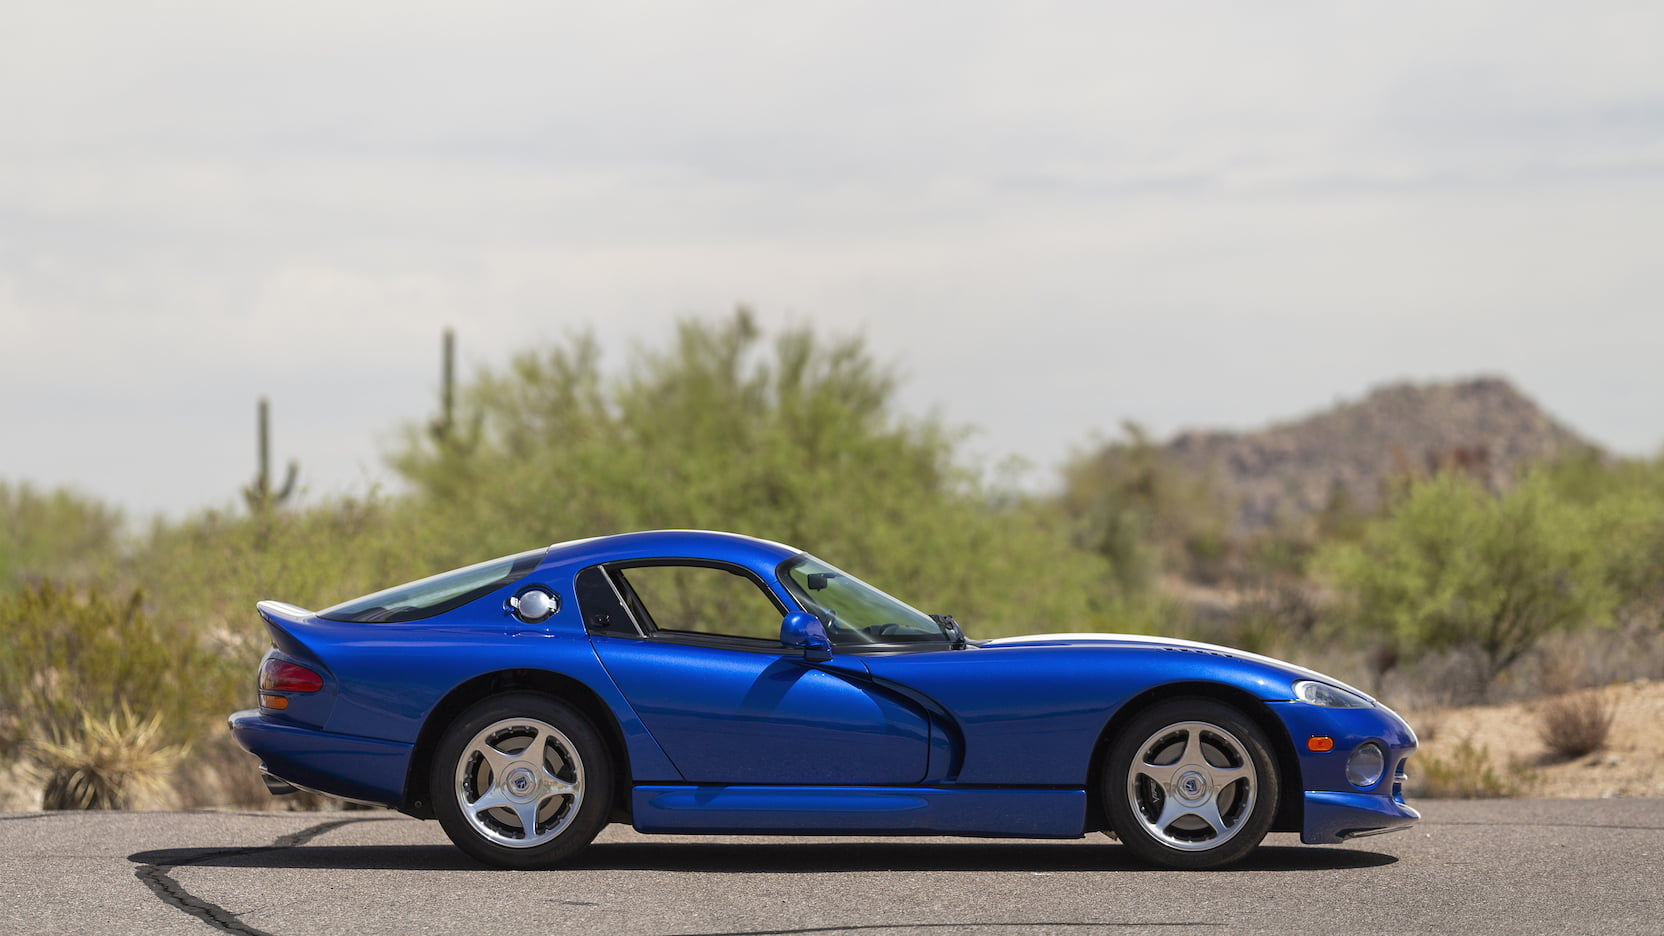 1996 Dodge Viper GTS passenger side